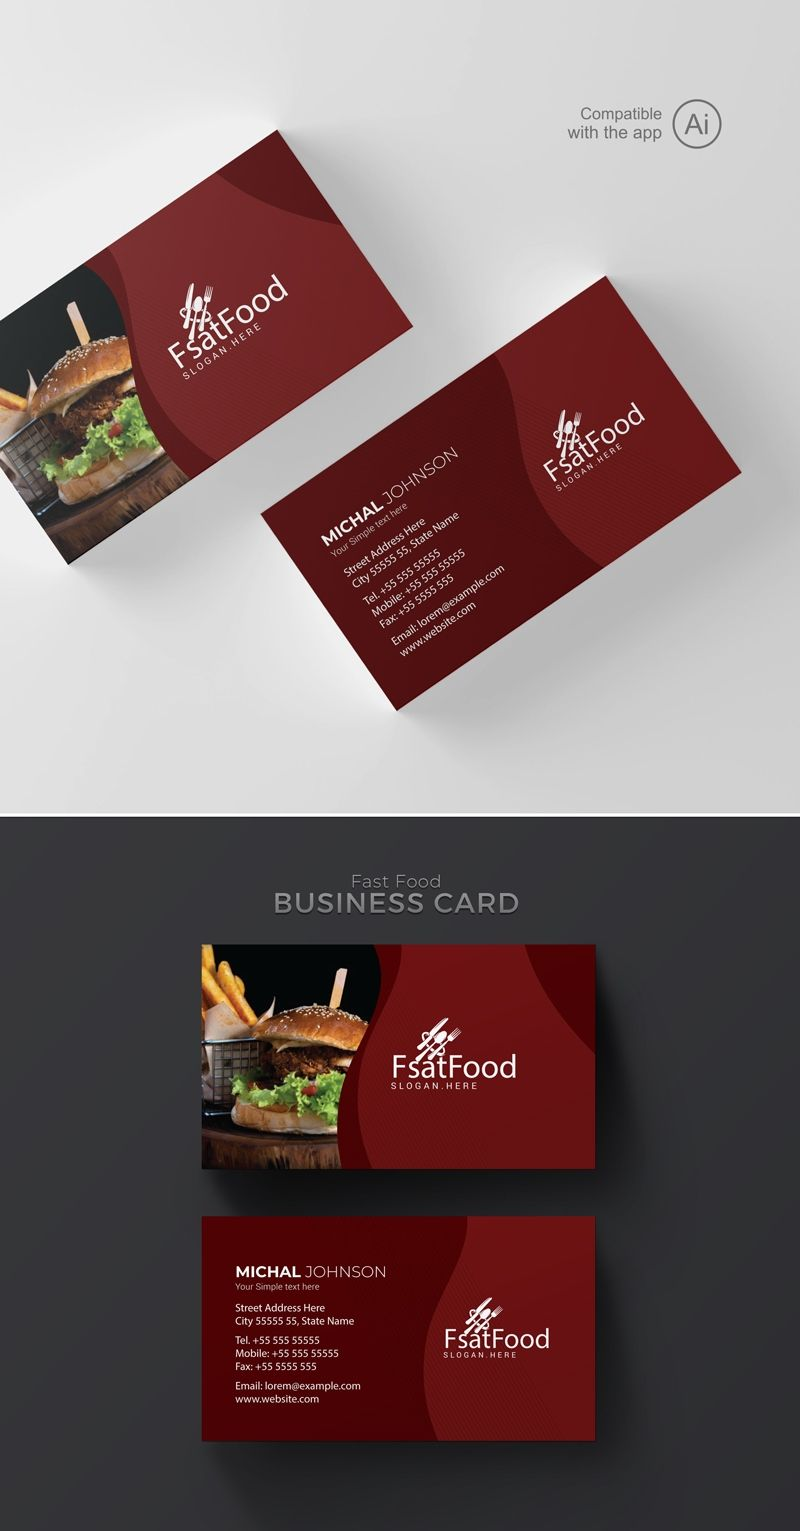 Restaurant Business Cards Templates Free Zohre Pertaining To Food Business Cards Te Food Business Card Restaurant Business Cards Free Business Card Templates